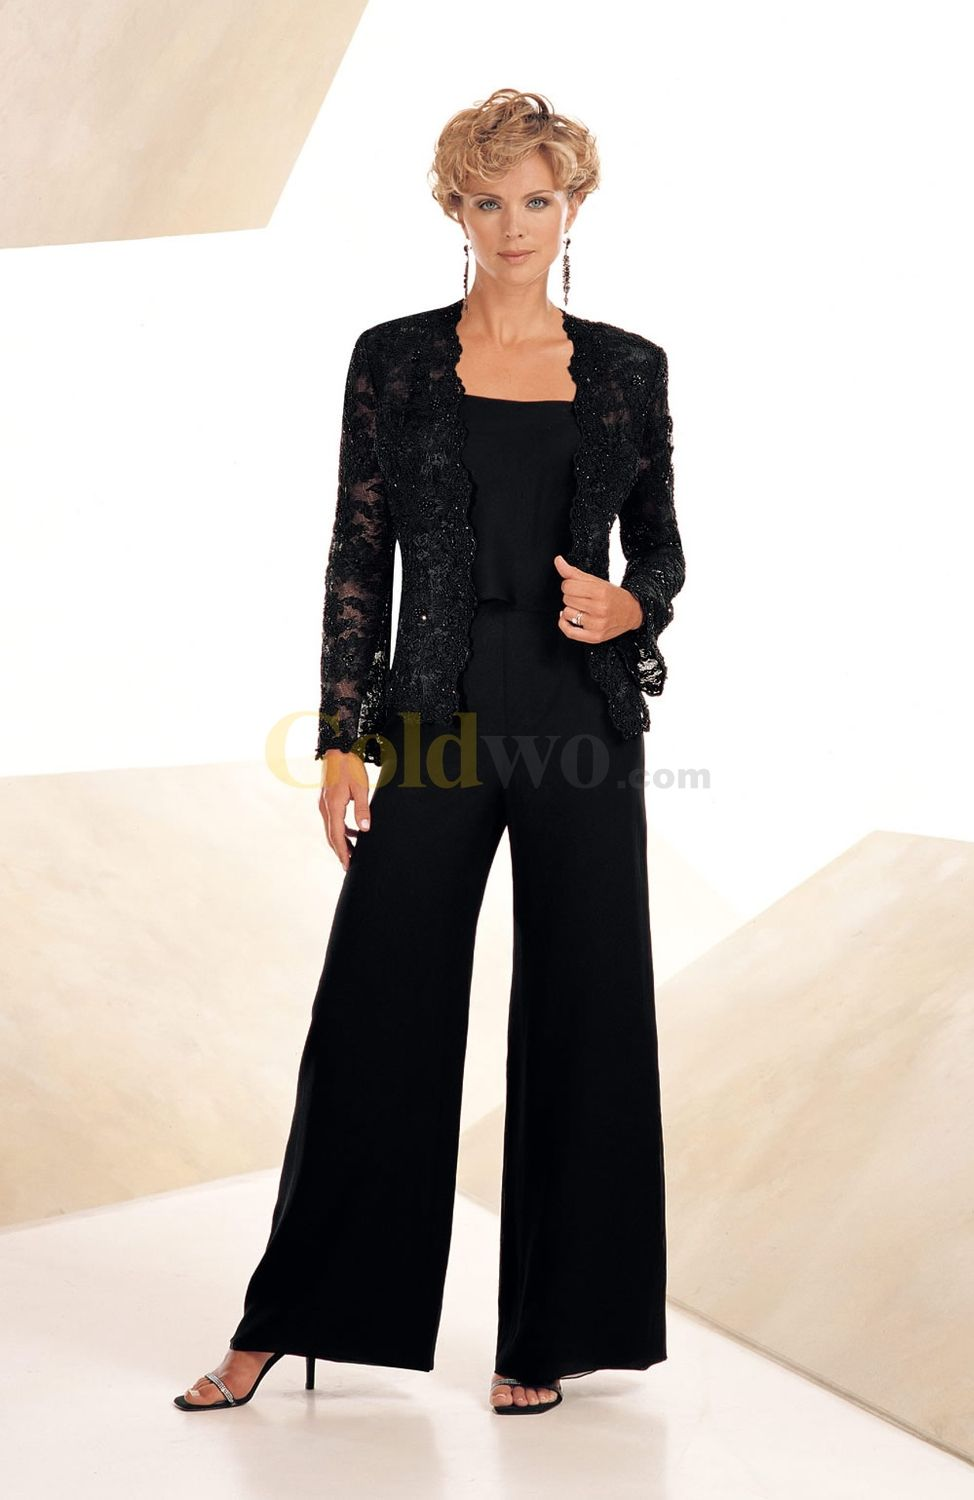 Wedding Table Plus Size Mother Of The Bride Pant Suits high quality three peice elegant black chiffon mother of the bride pant suits plus size onsale